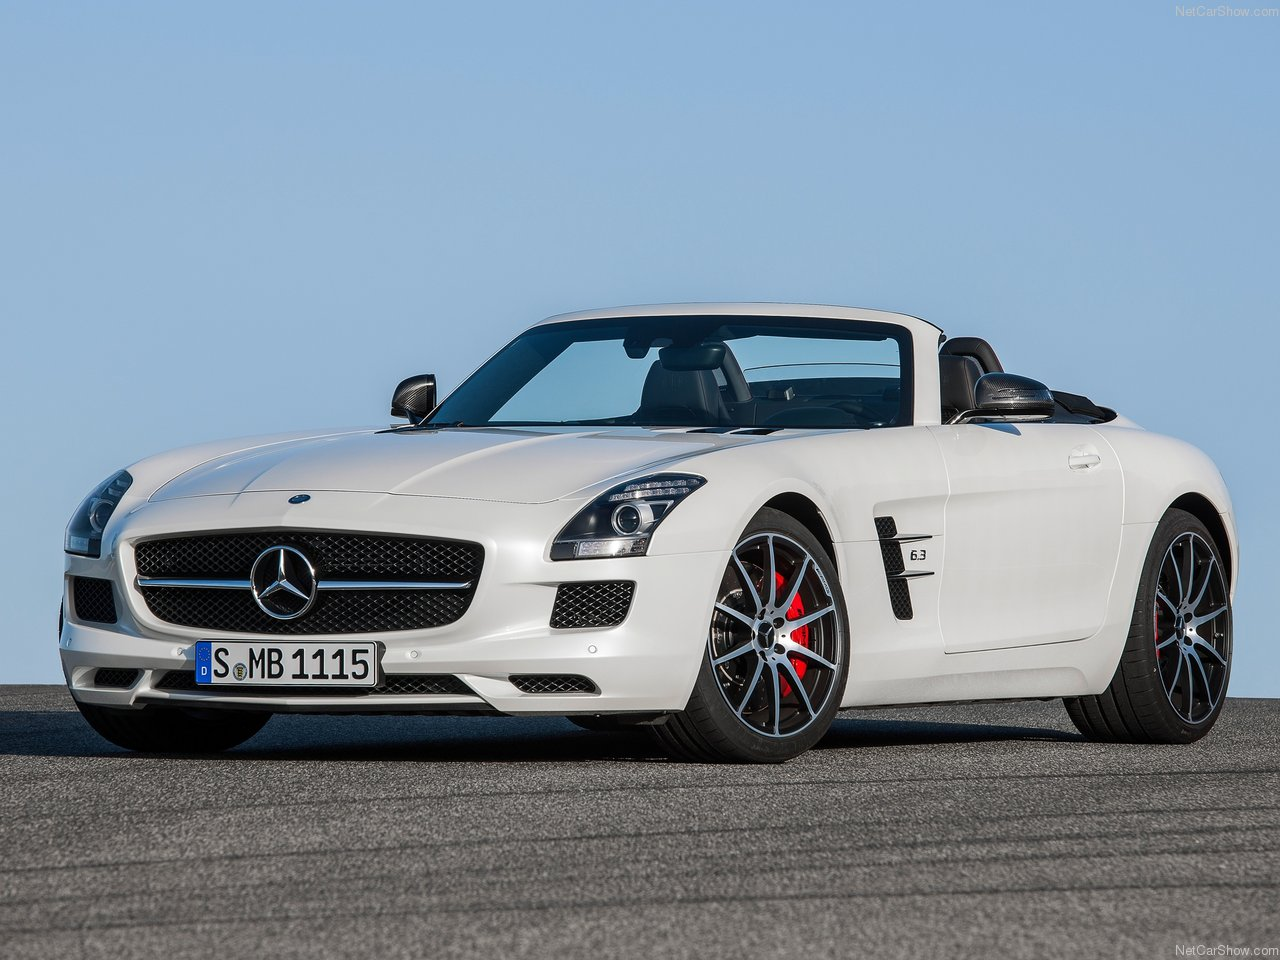 All cars nz 2013 mercedes benz sls convertible amg gt for Mercedes benz sls amg convertible for sale